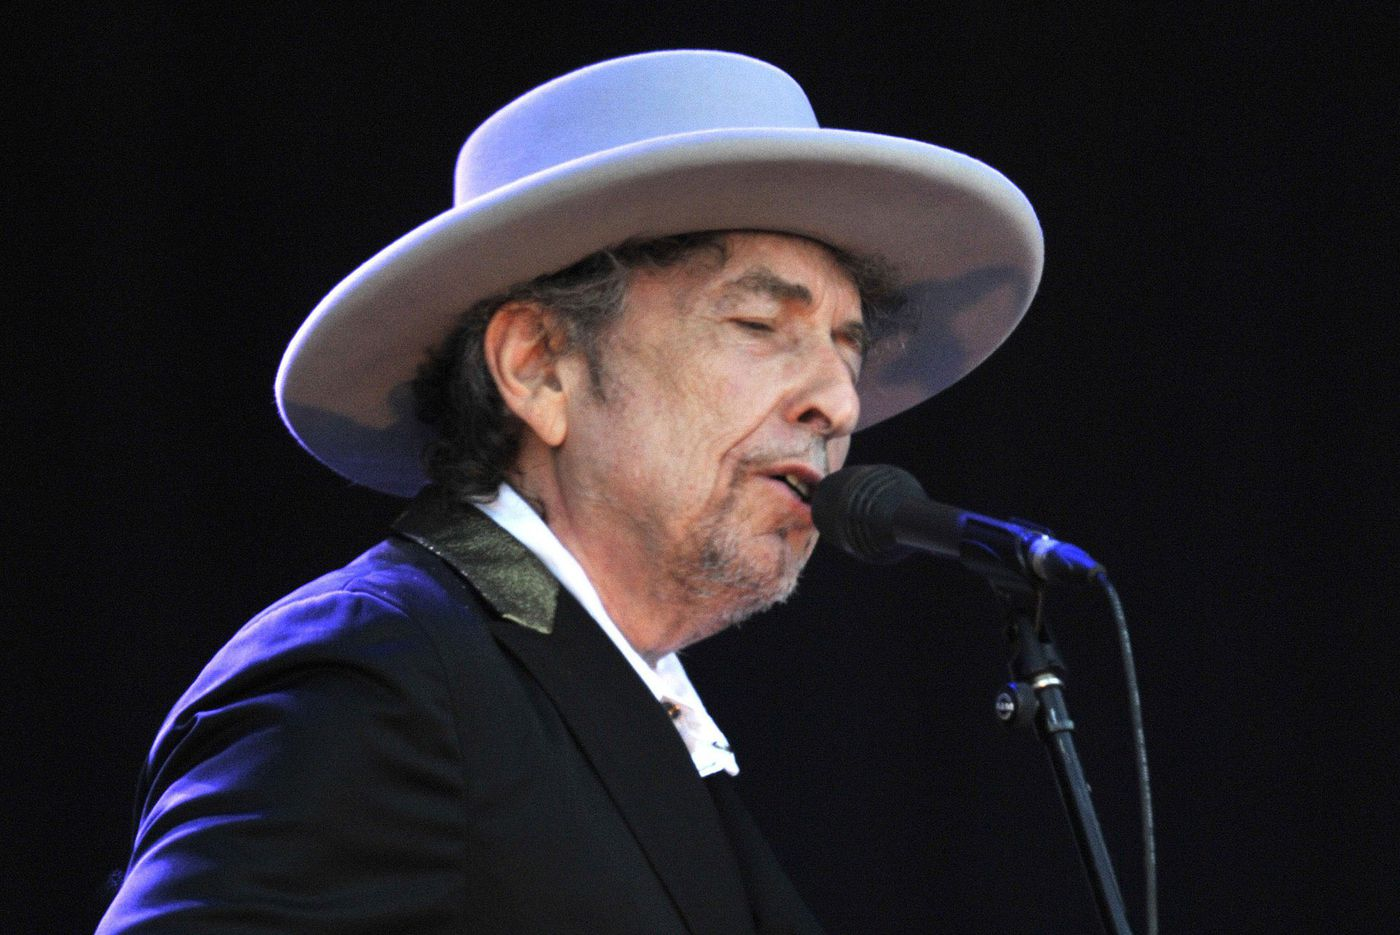 Bob Dylan added to the Hard Rock's fall lineup up in Atlantic City